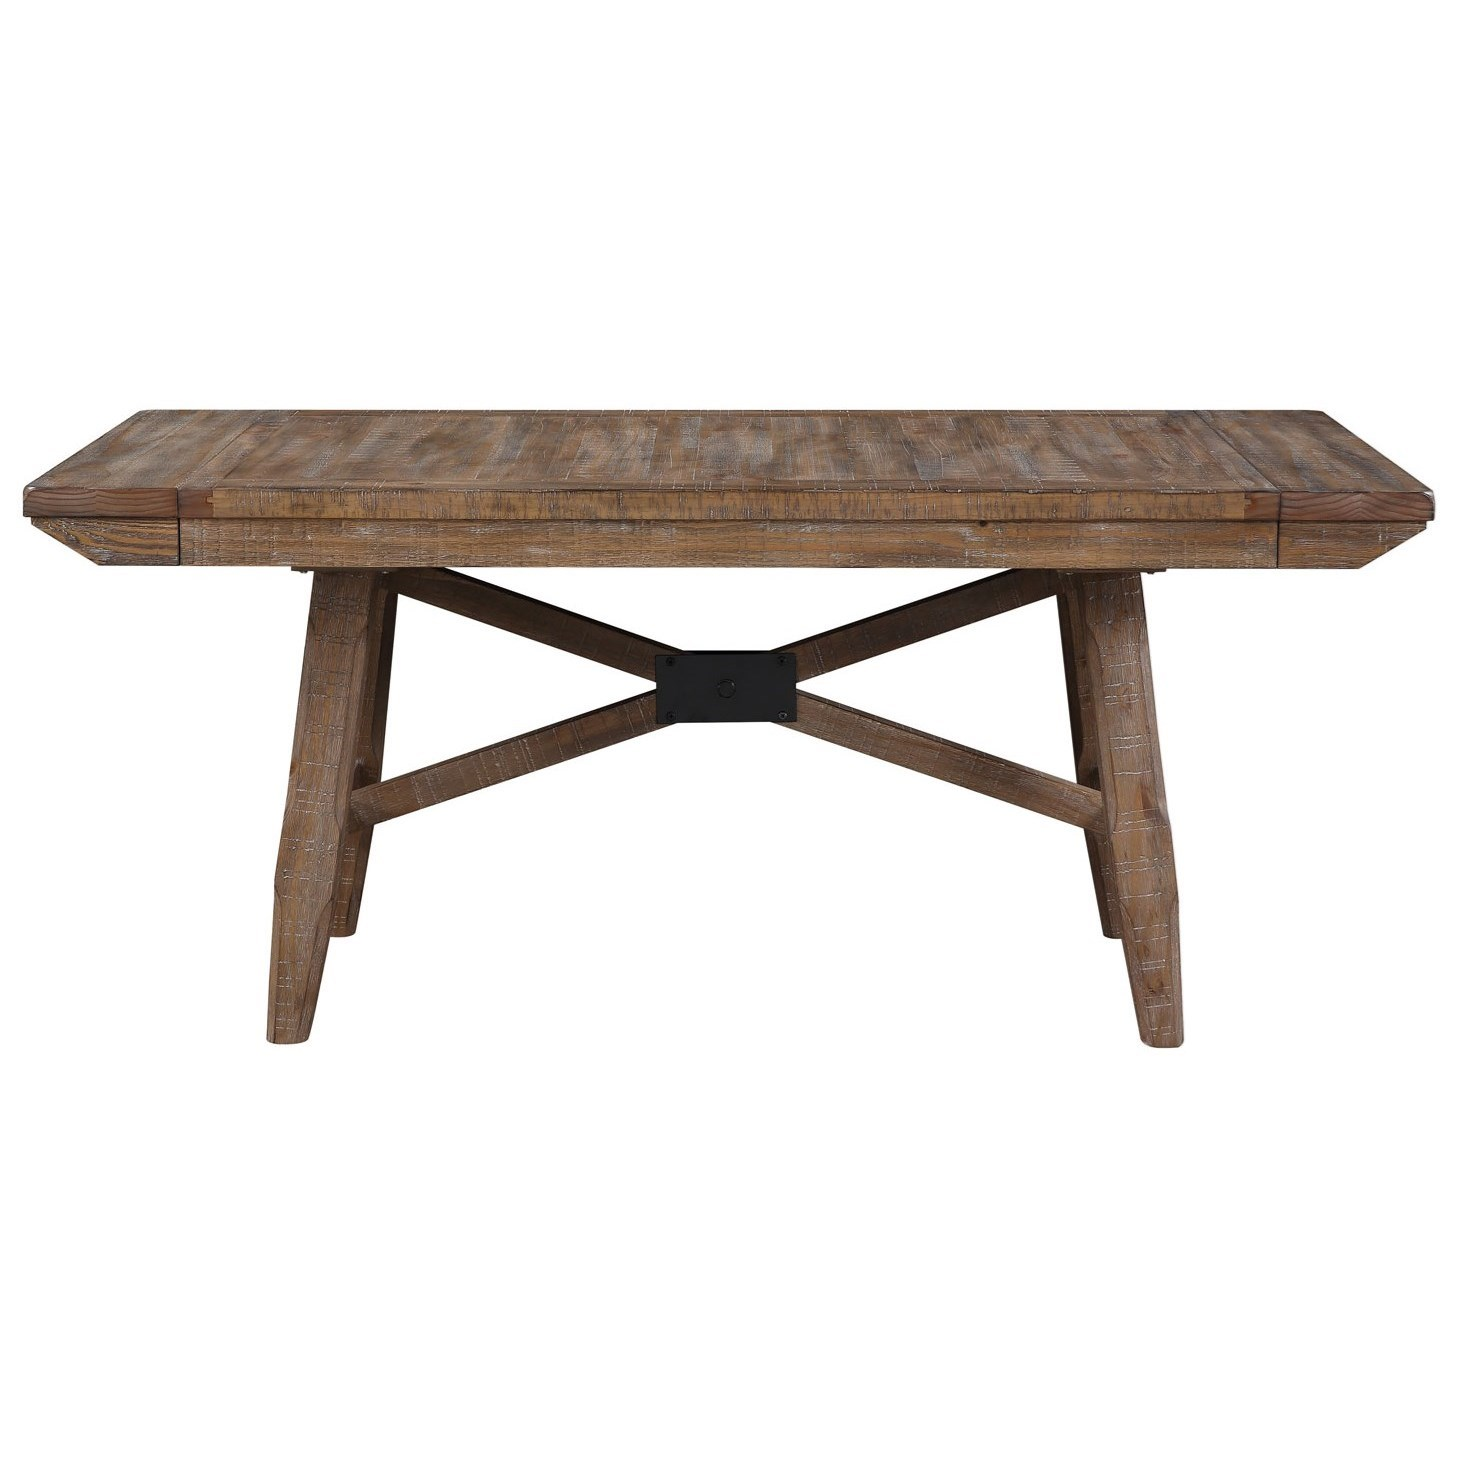 Riverdale Rustic Dining Table With Expandable Leaf Sadler S Home Furnishings Dining Tables